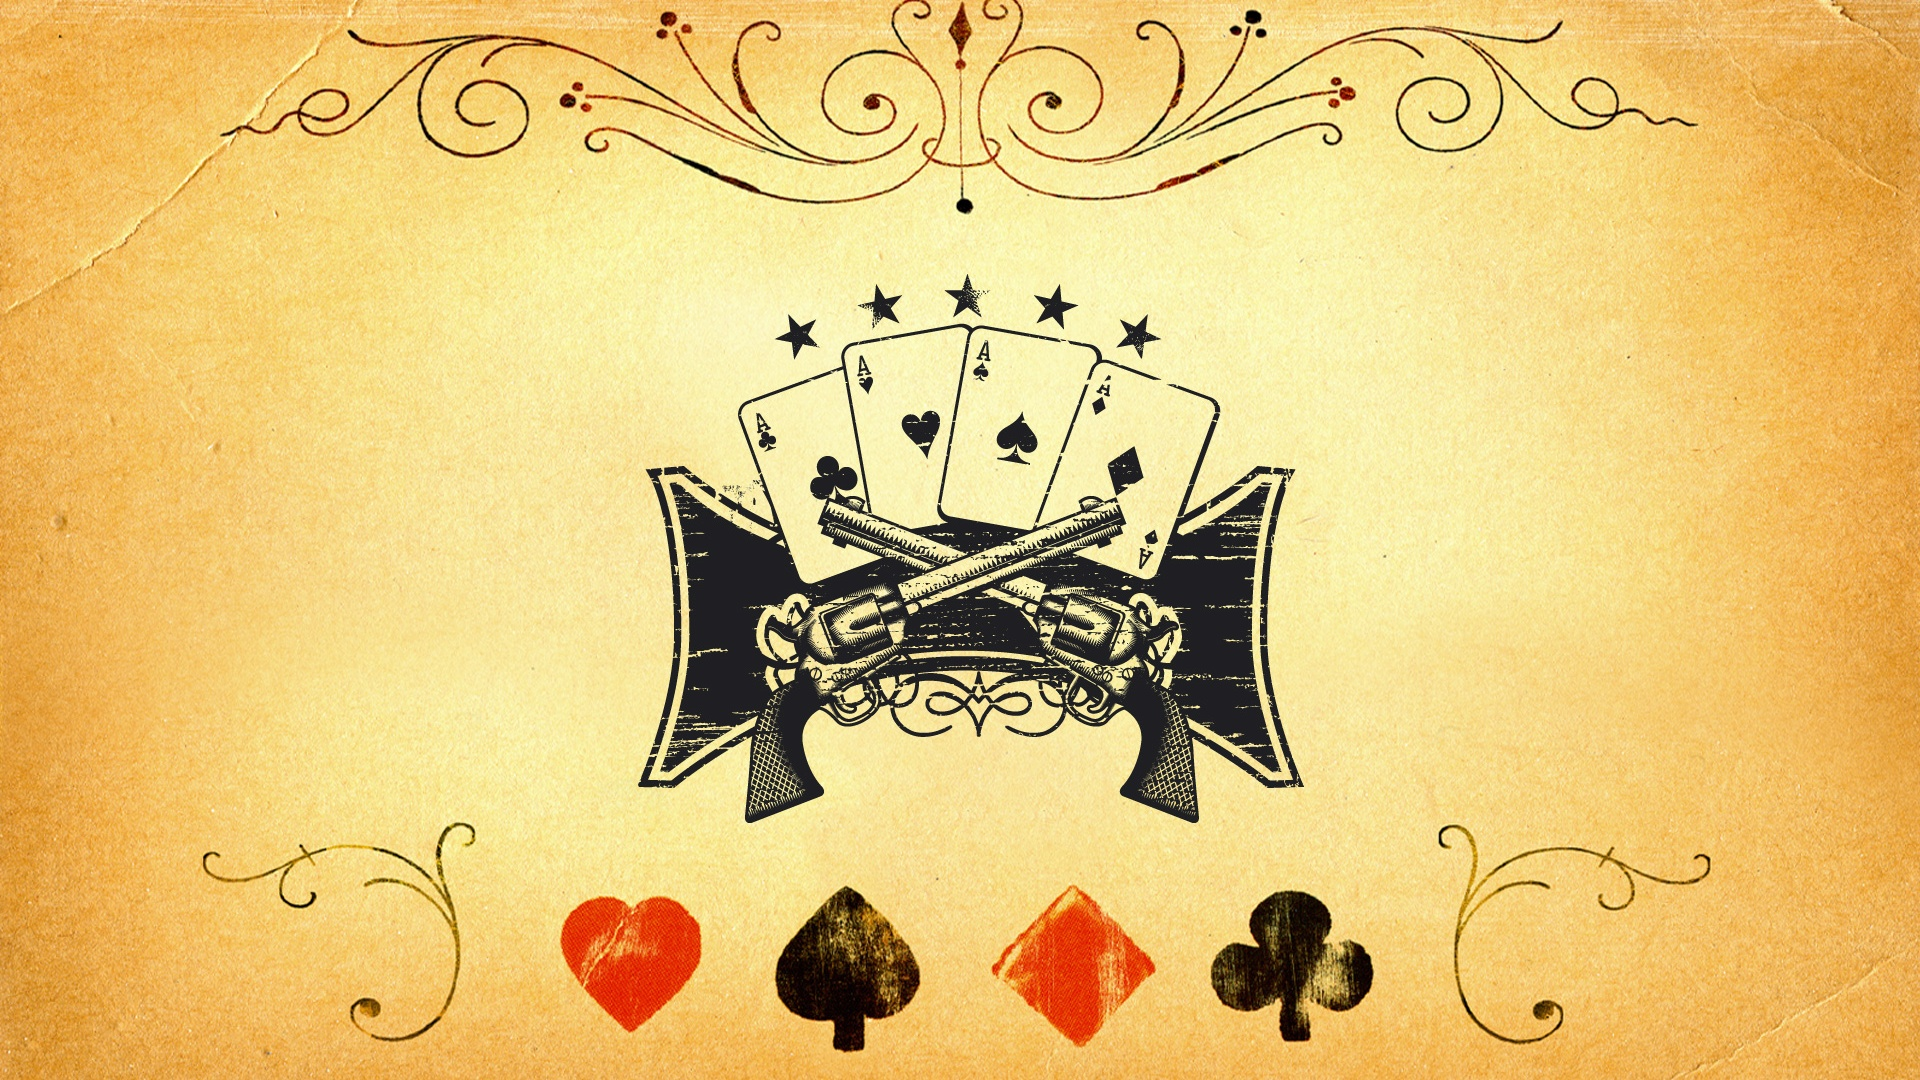 western-poker_wallpapers_16916_1920x1080